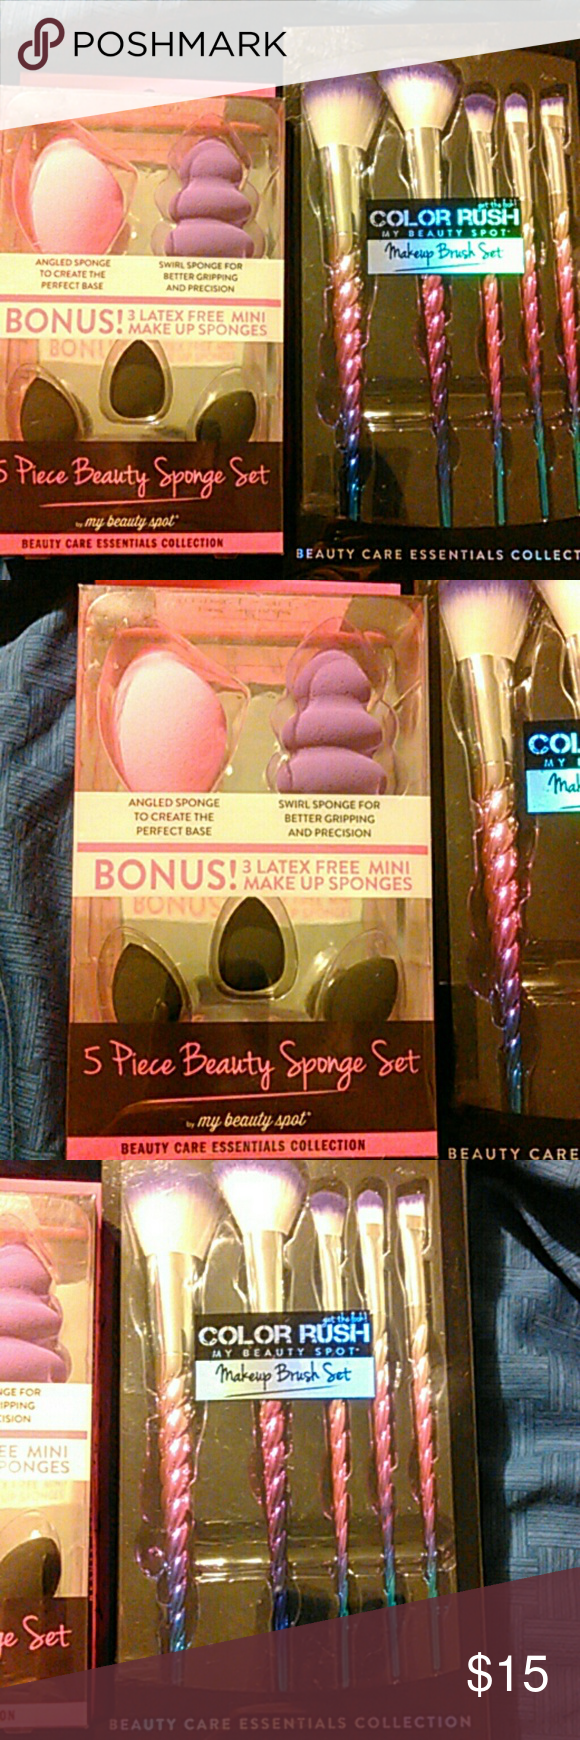 New Makeup brushes and Sponge Sets Beauty sponge